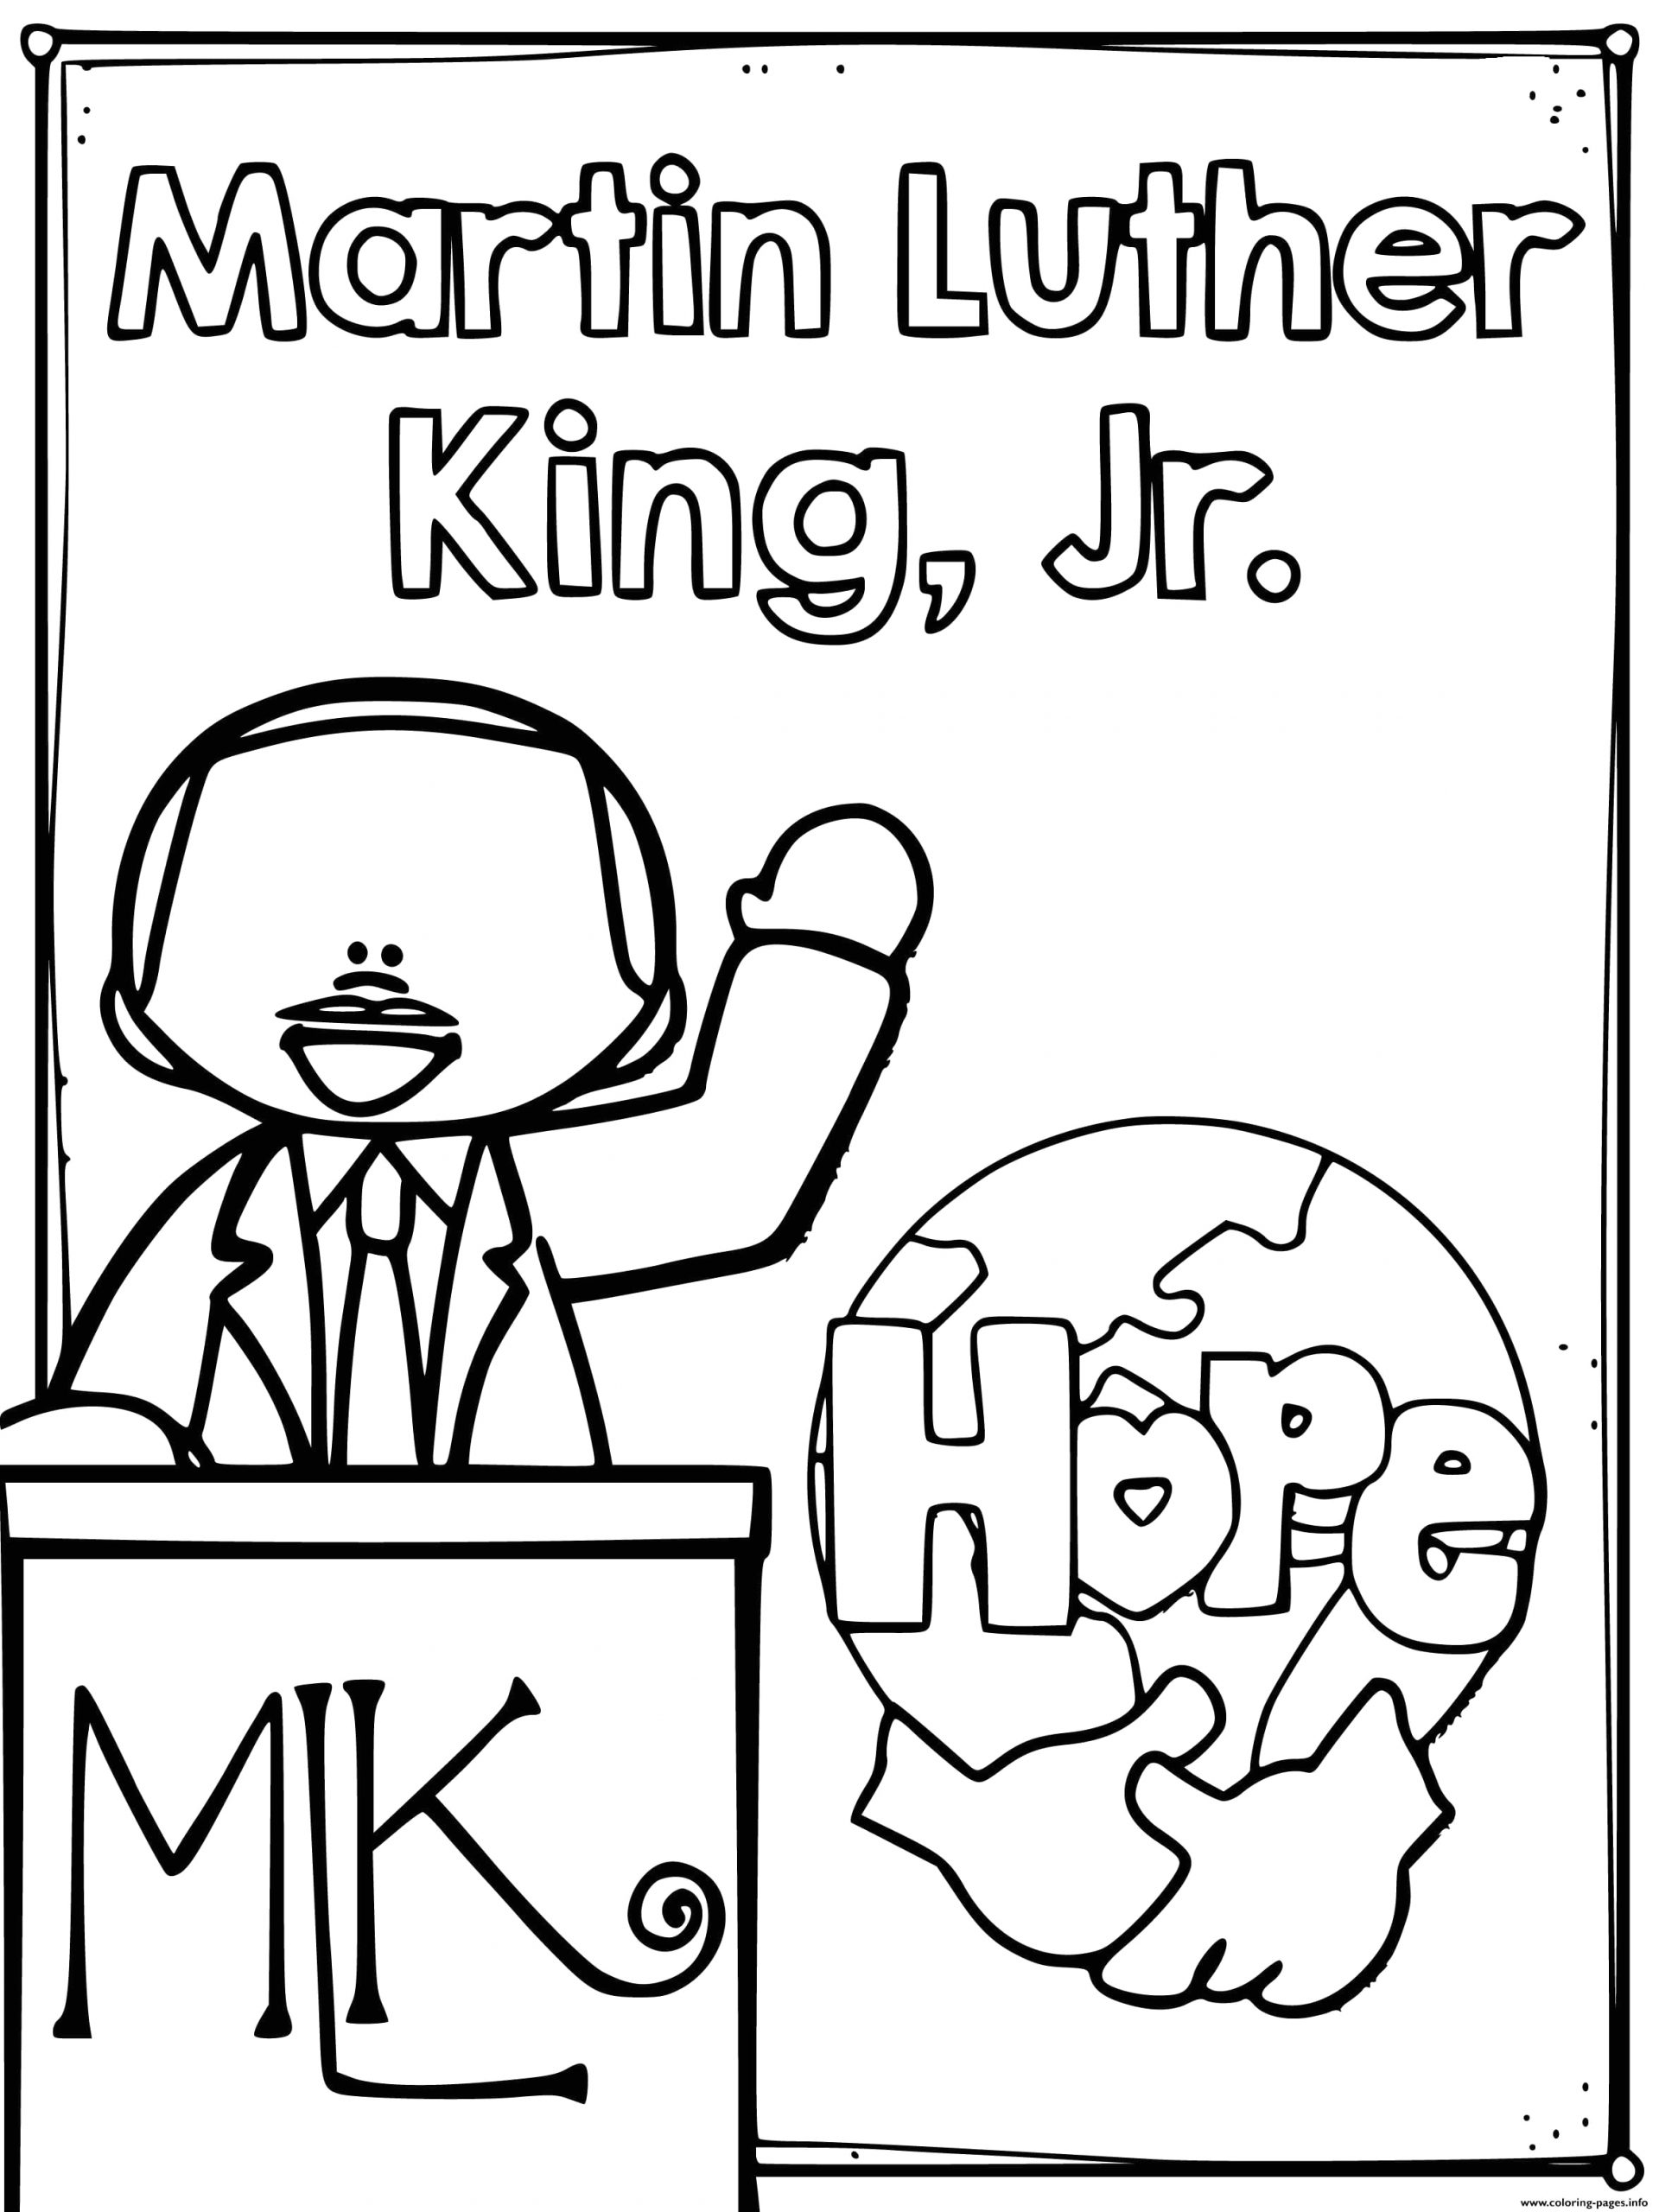 martin luther king jr day coloring pages print for free